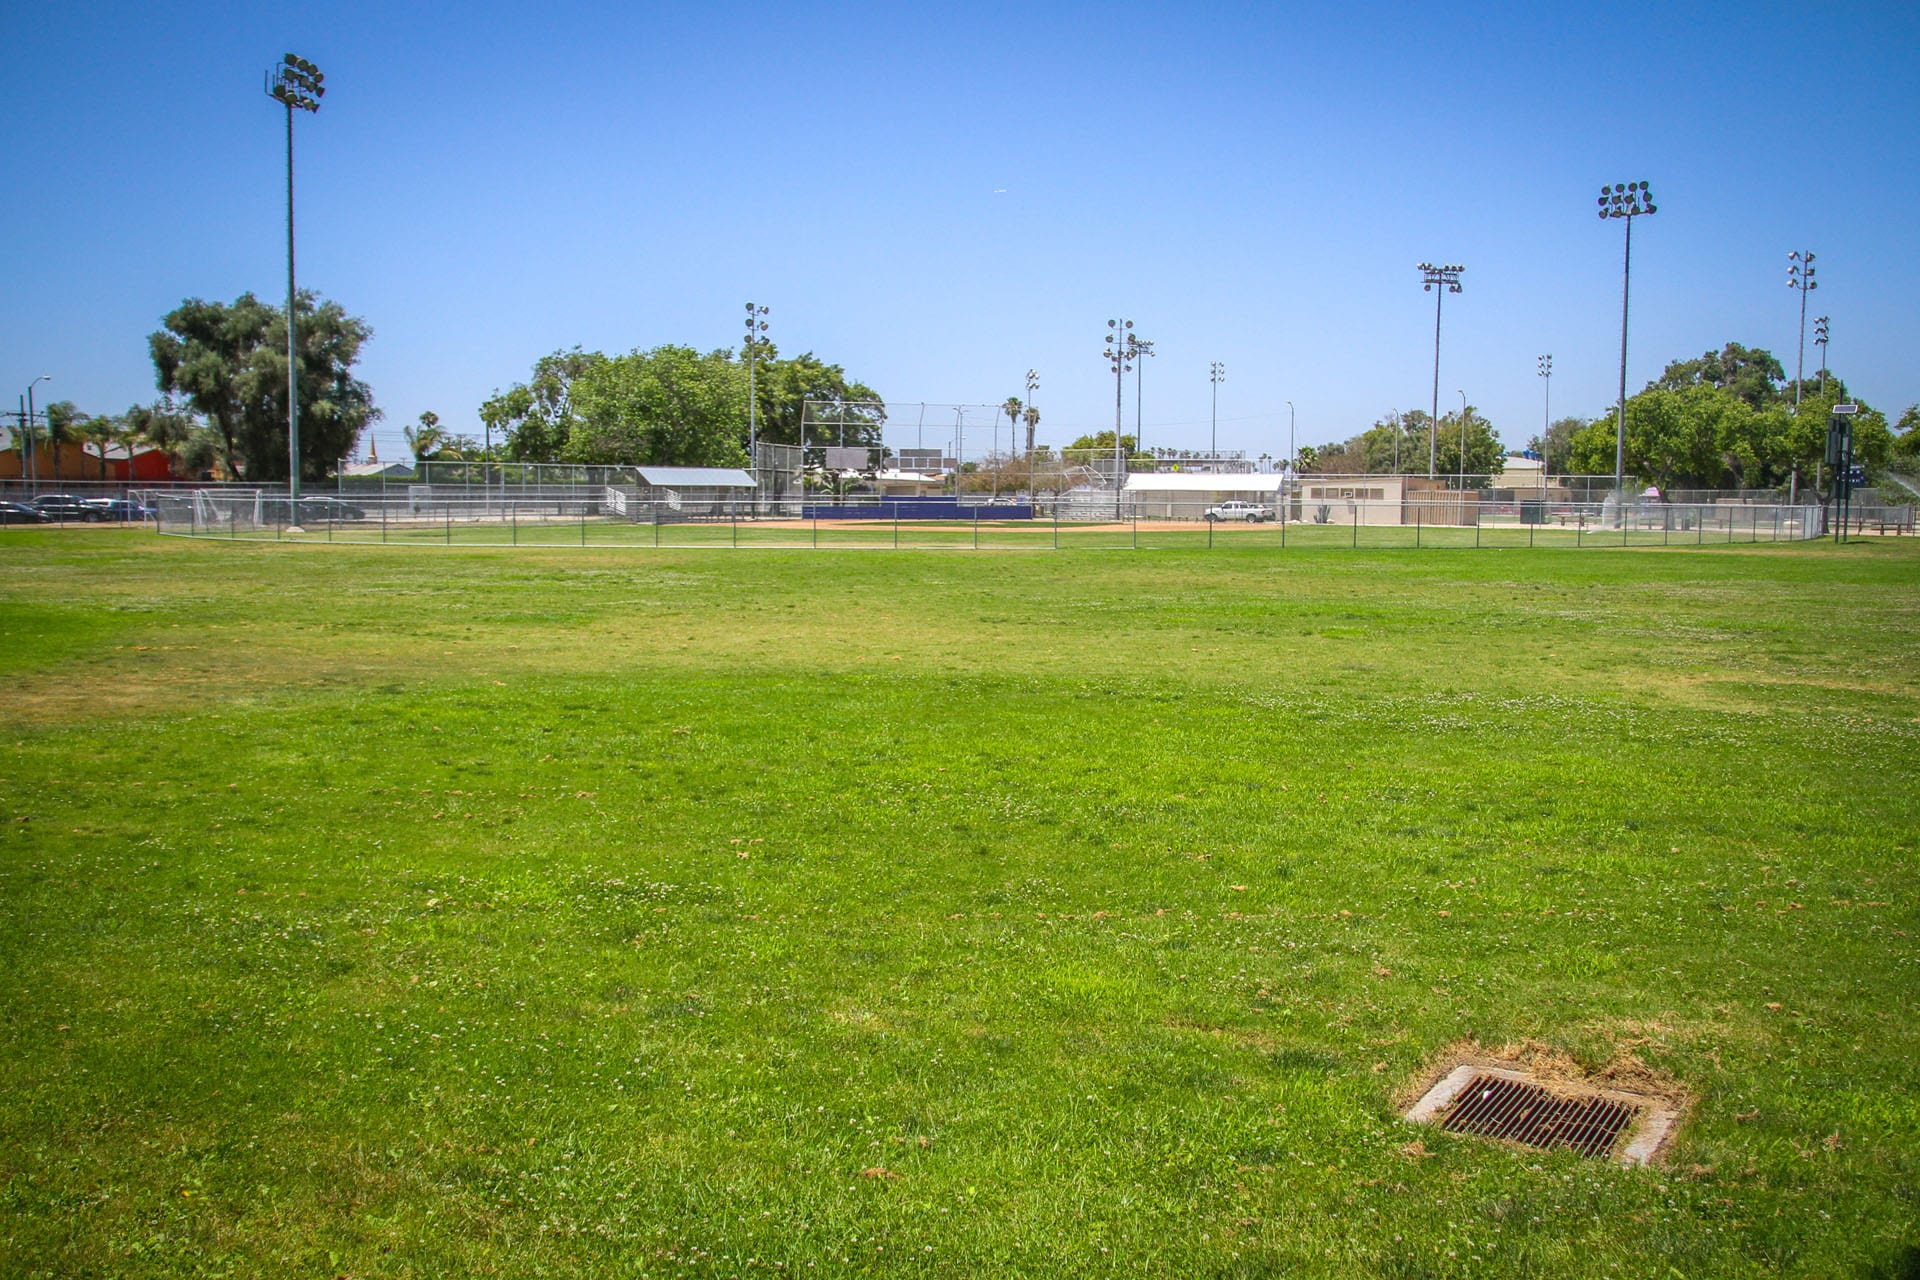 Grass area outside of baseball field